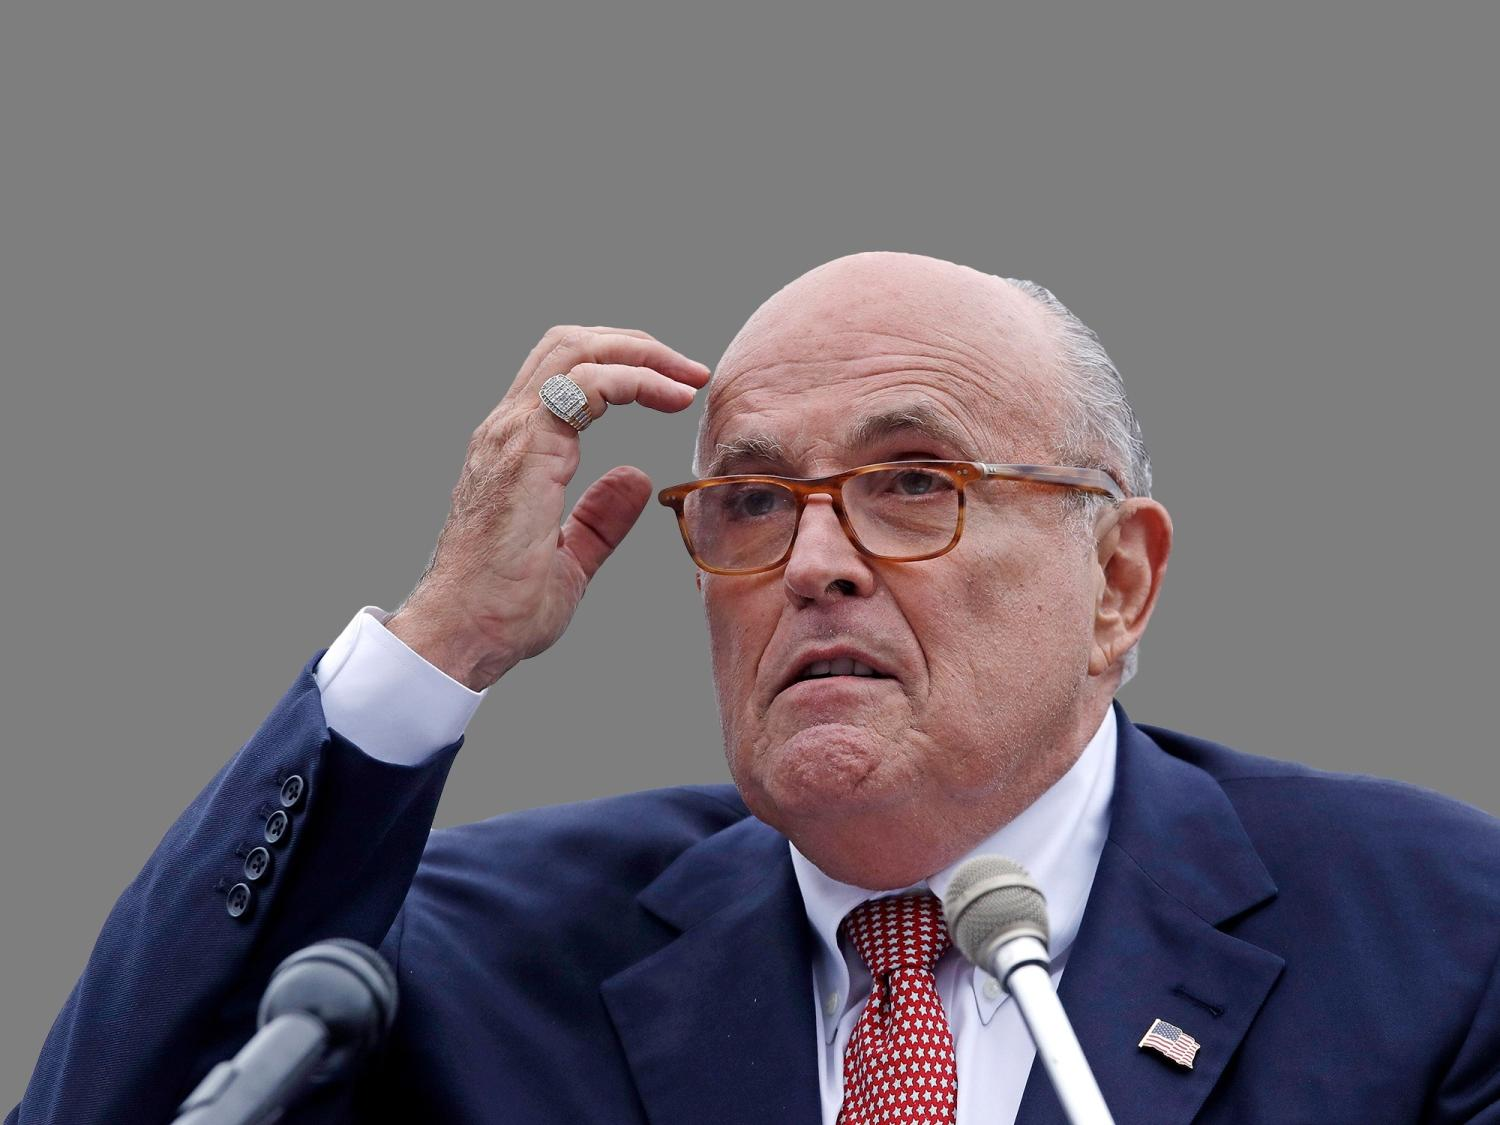 USA prosecutors probe Trump lawyer Giuliani ties to Ukrainian projects, reports WSJ